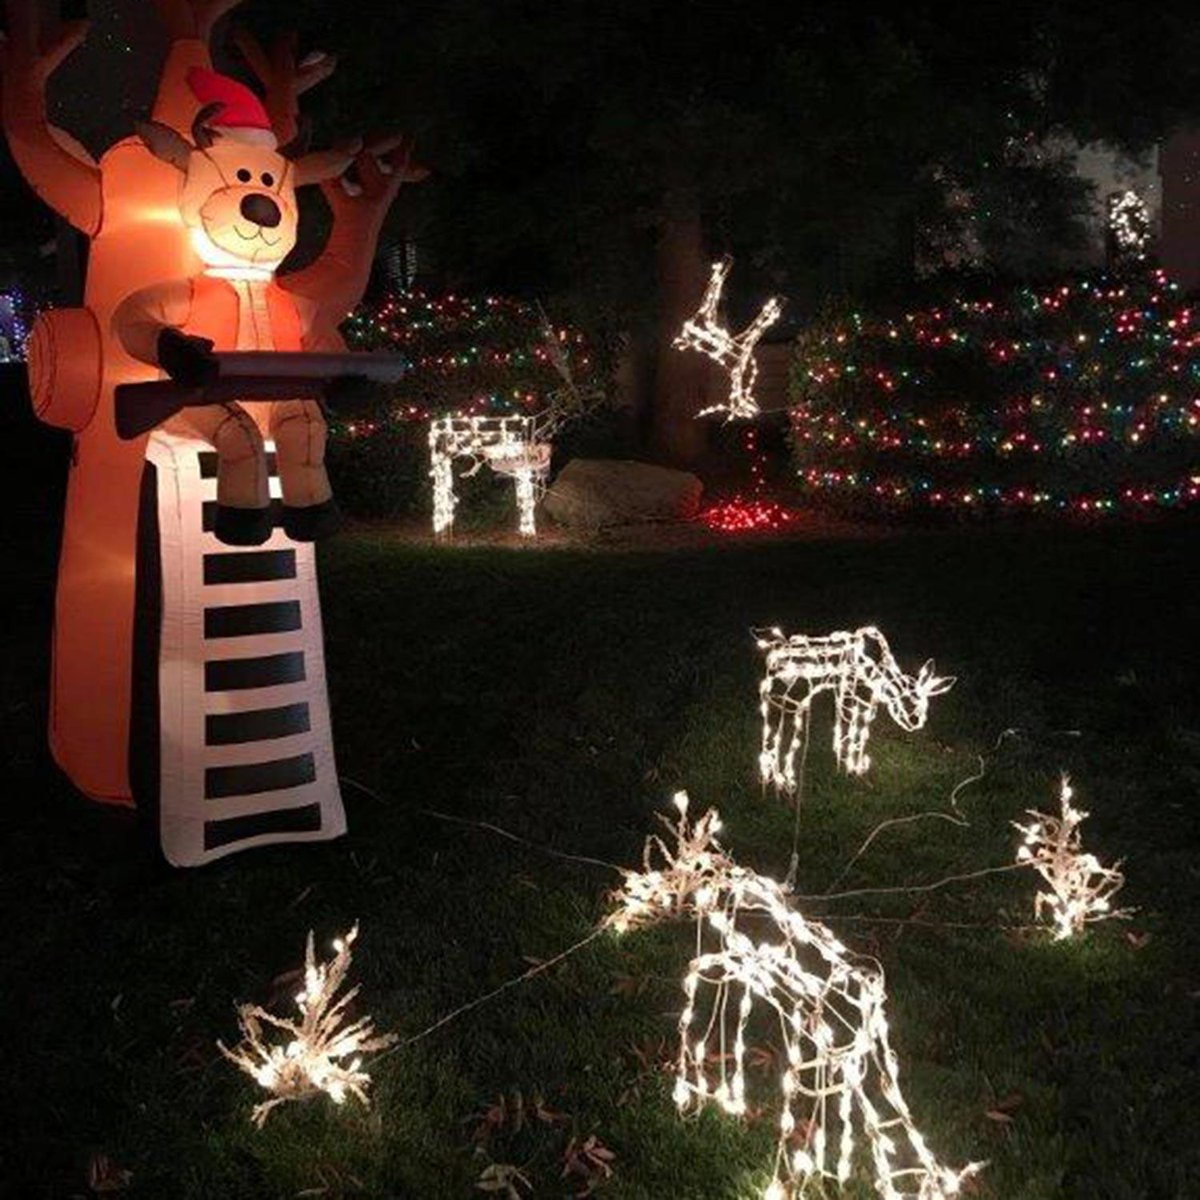 abc30 fresno on twitter clovis candy cane lane lights display features dead deer hanging from a tree httpstcovn3vttjnnm